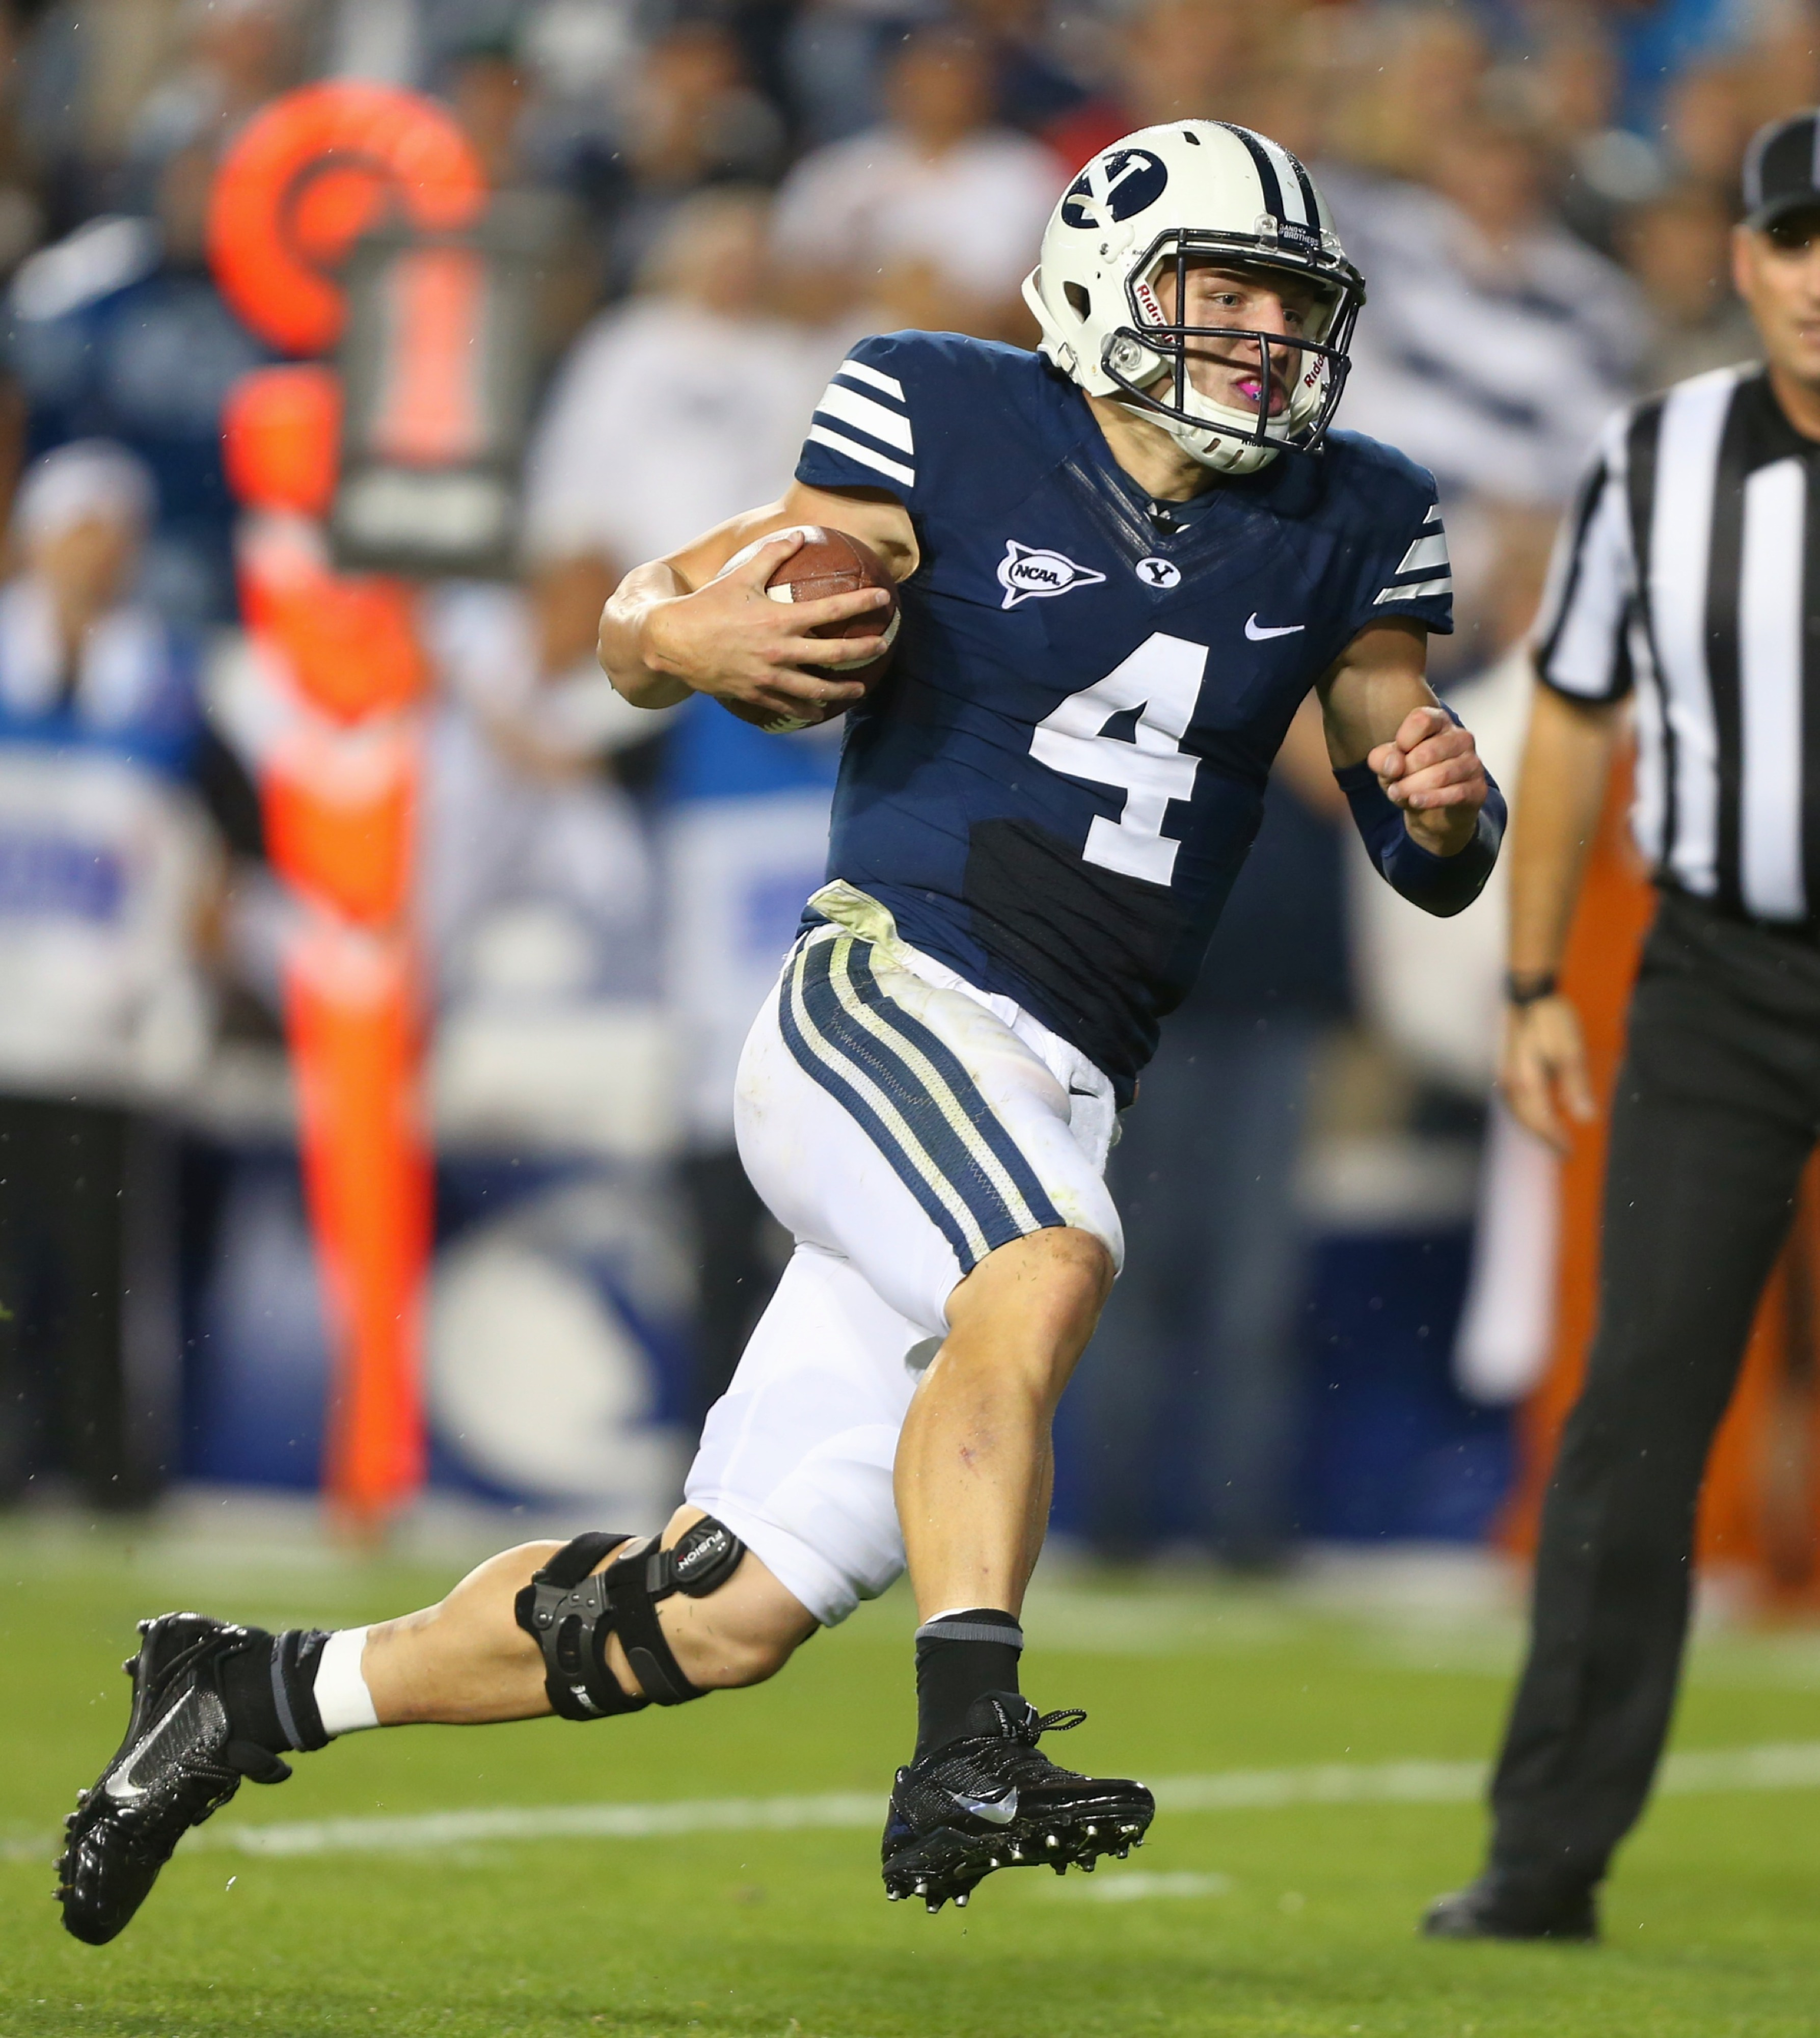 Taysom looking to run.